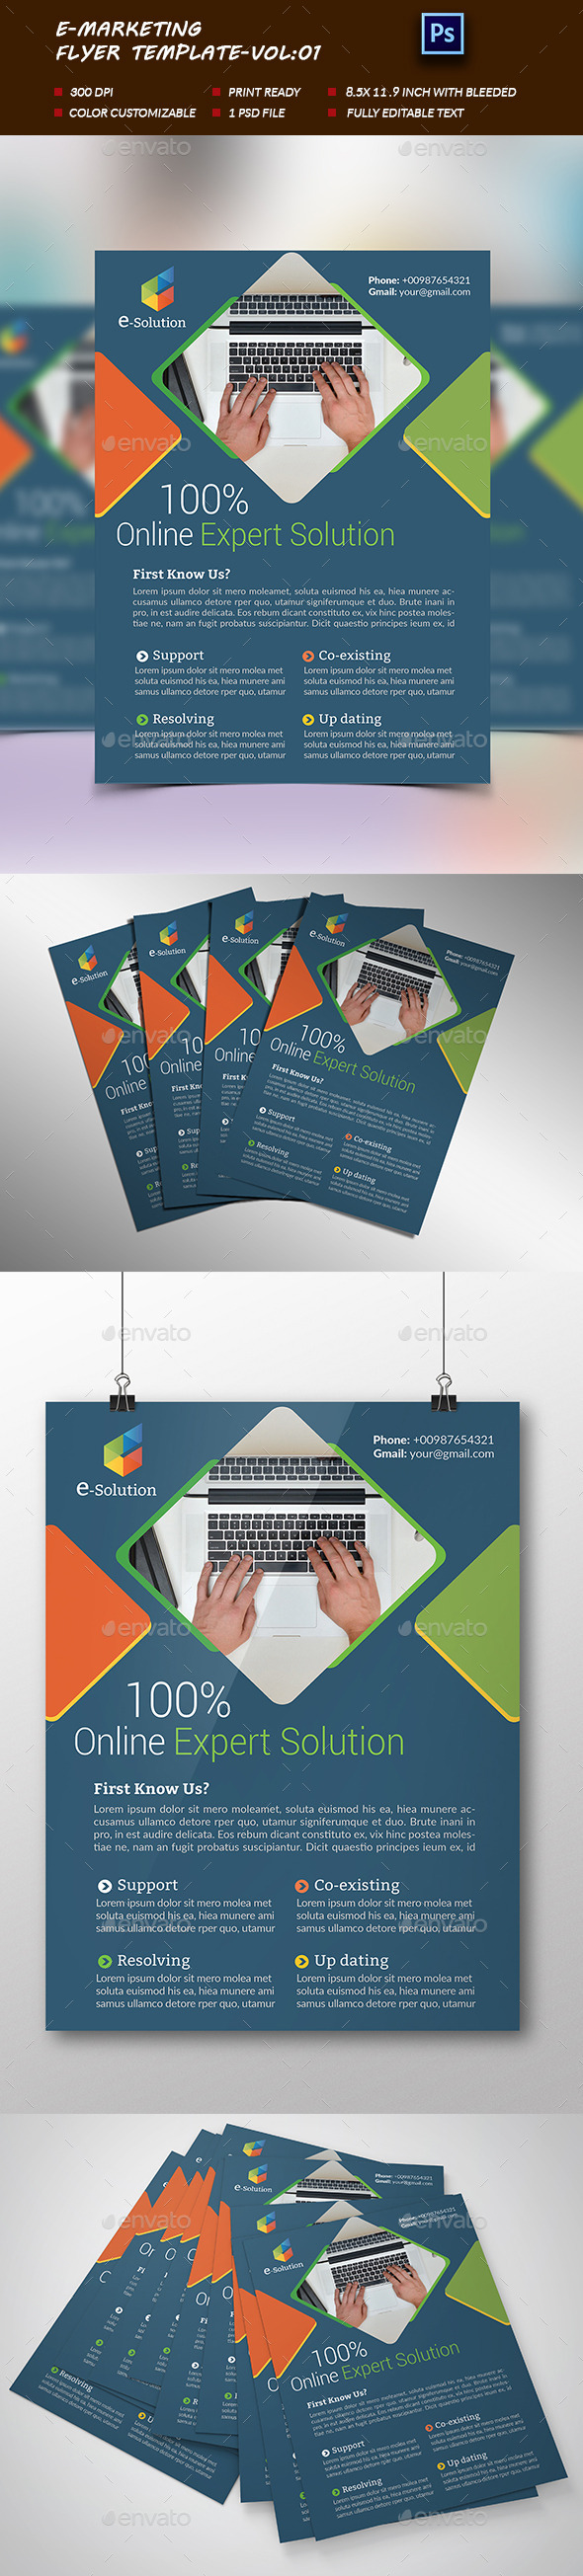 E-Marketing Business Flyer Template-Vol:01 - Corporate Flyers